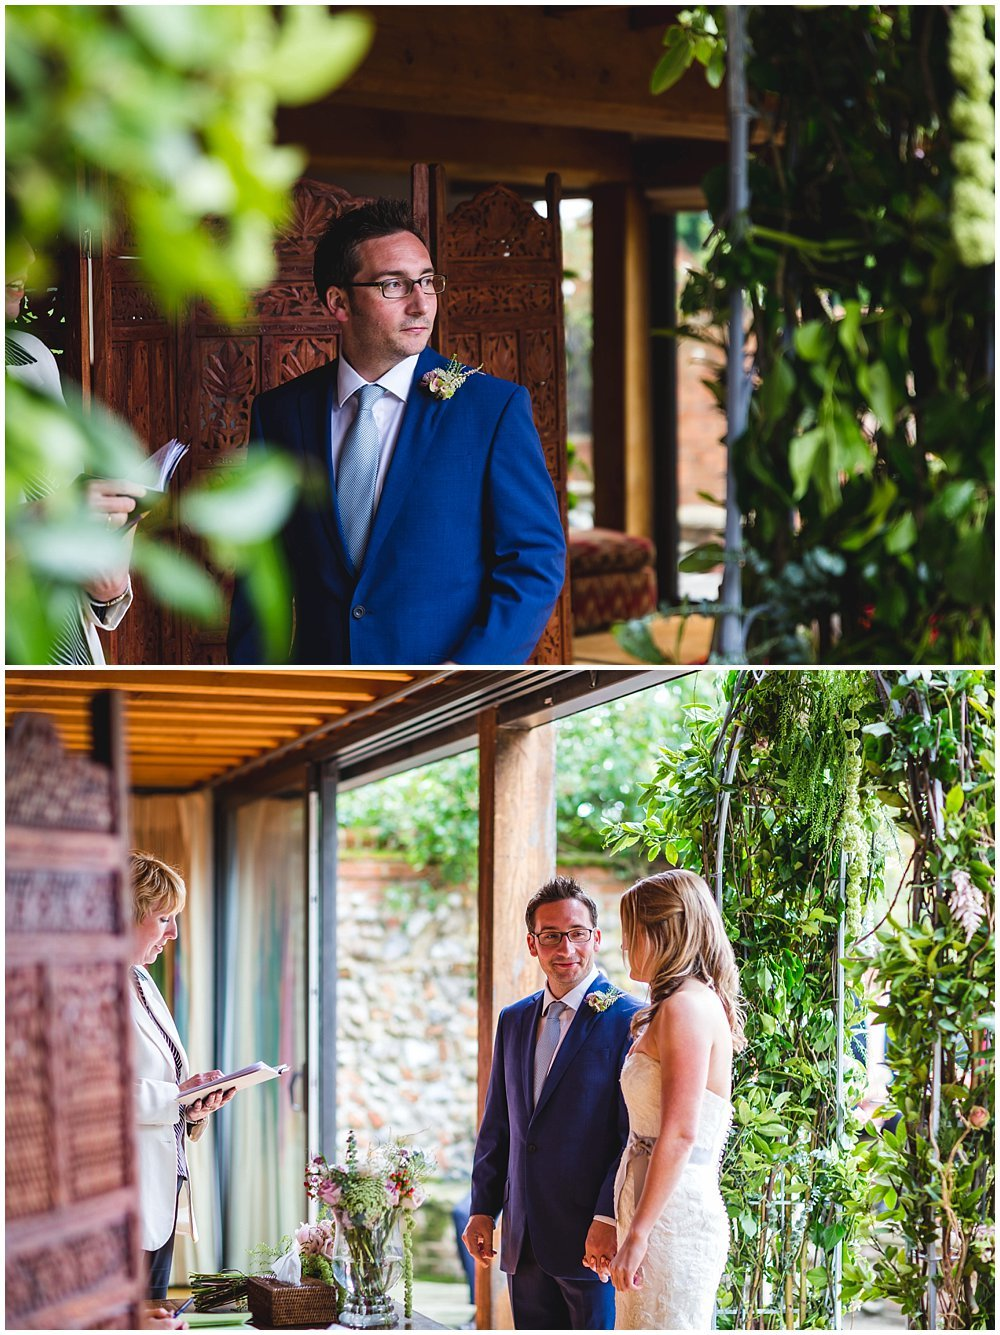 MEGHAN AND JAMES CHAUCER BARN WEDDING - NORFOLK AND NORWICH WEDDING PHOTOGRAPHER 20